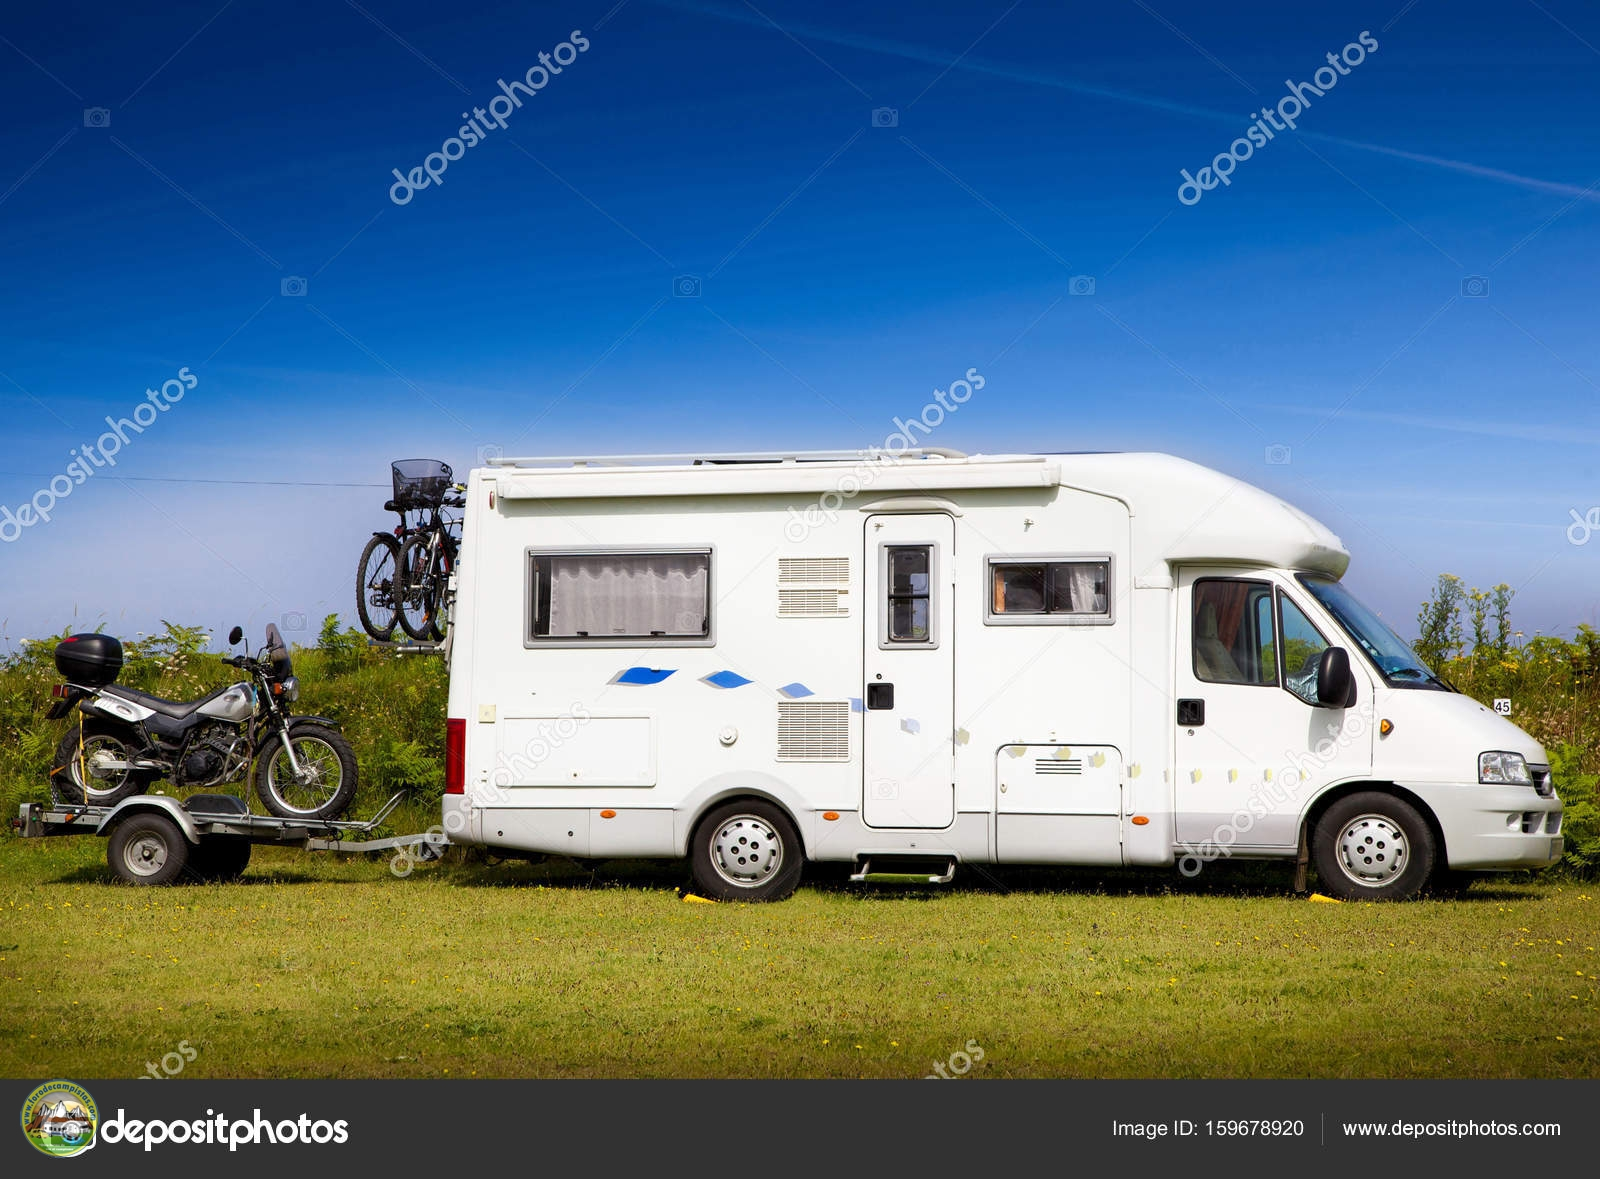 depositphotos_159678920-stock-photo-motorhome-with-motorbike.jpg